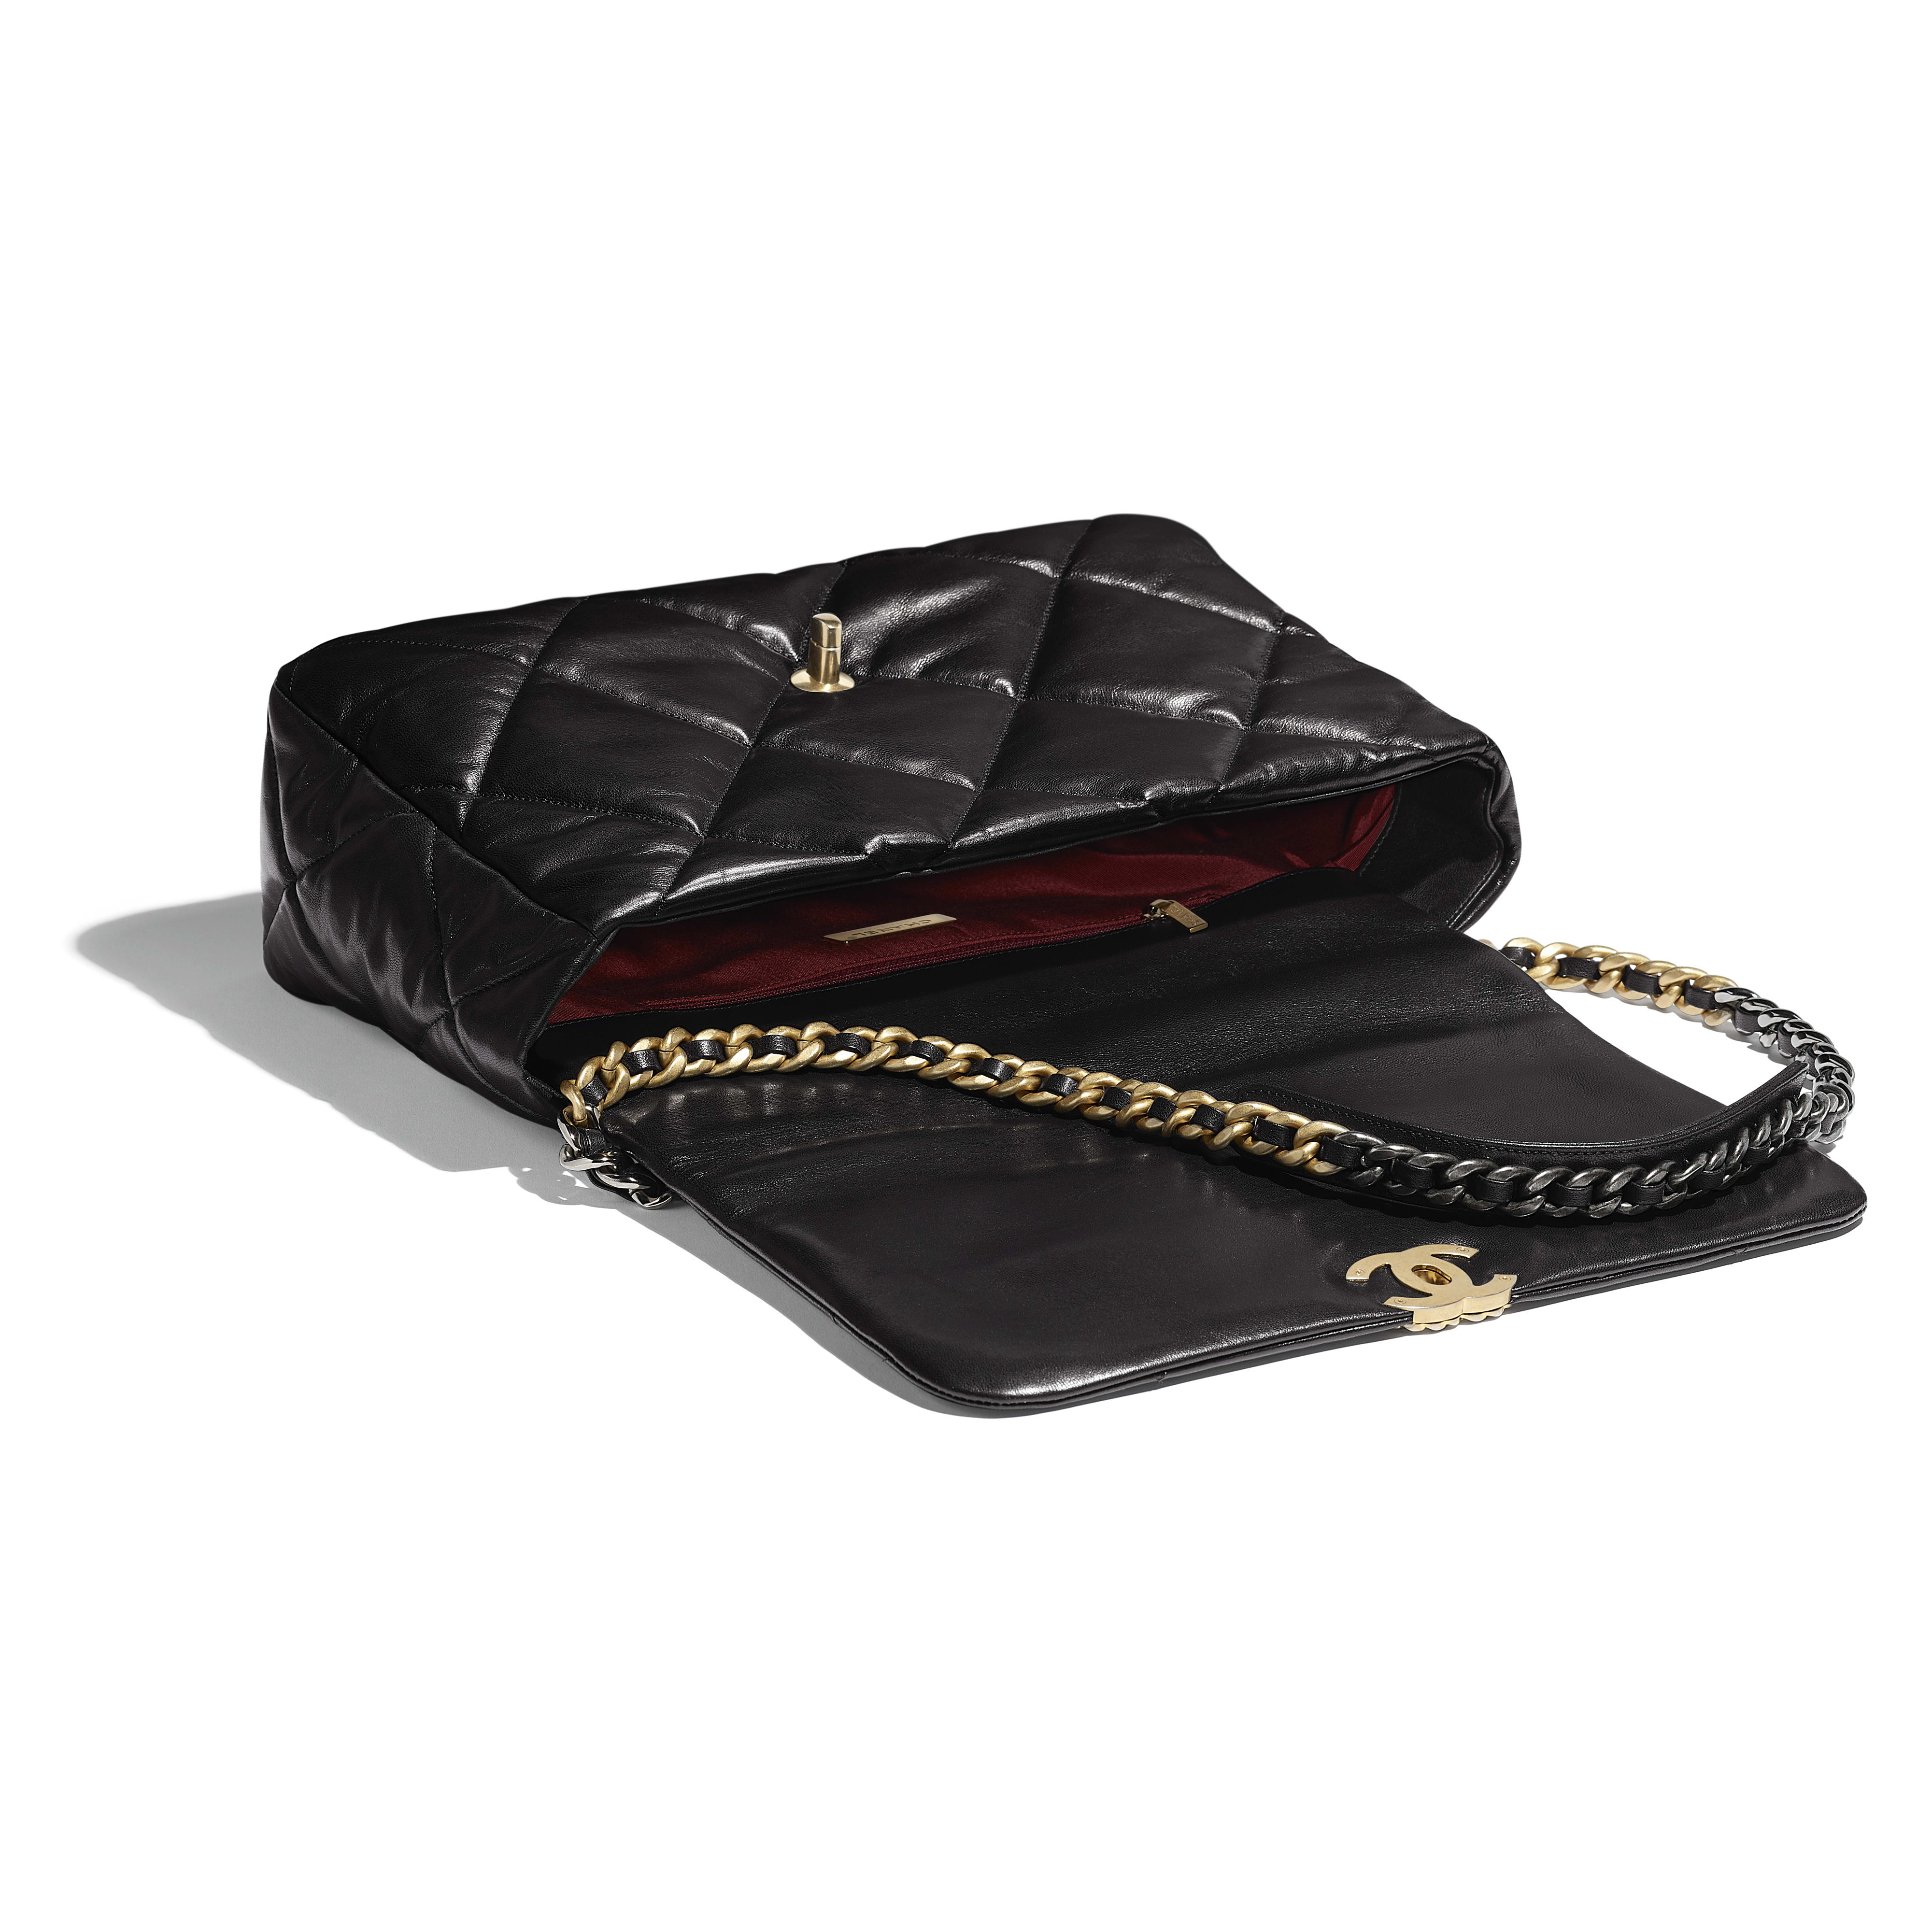 CHANEL 19 Maxi Flap Bag - Black - Lambskin, Gold-Tone, Silver-Tone & Ruthenium-Finish Metal - CHANEL - Other view - see standard sized version